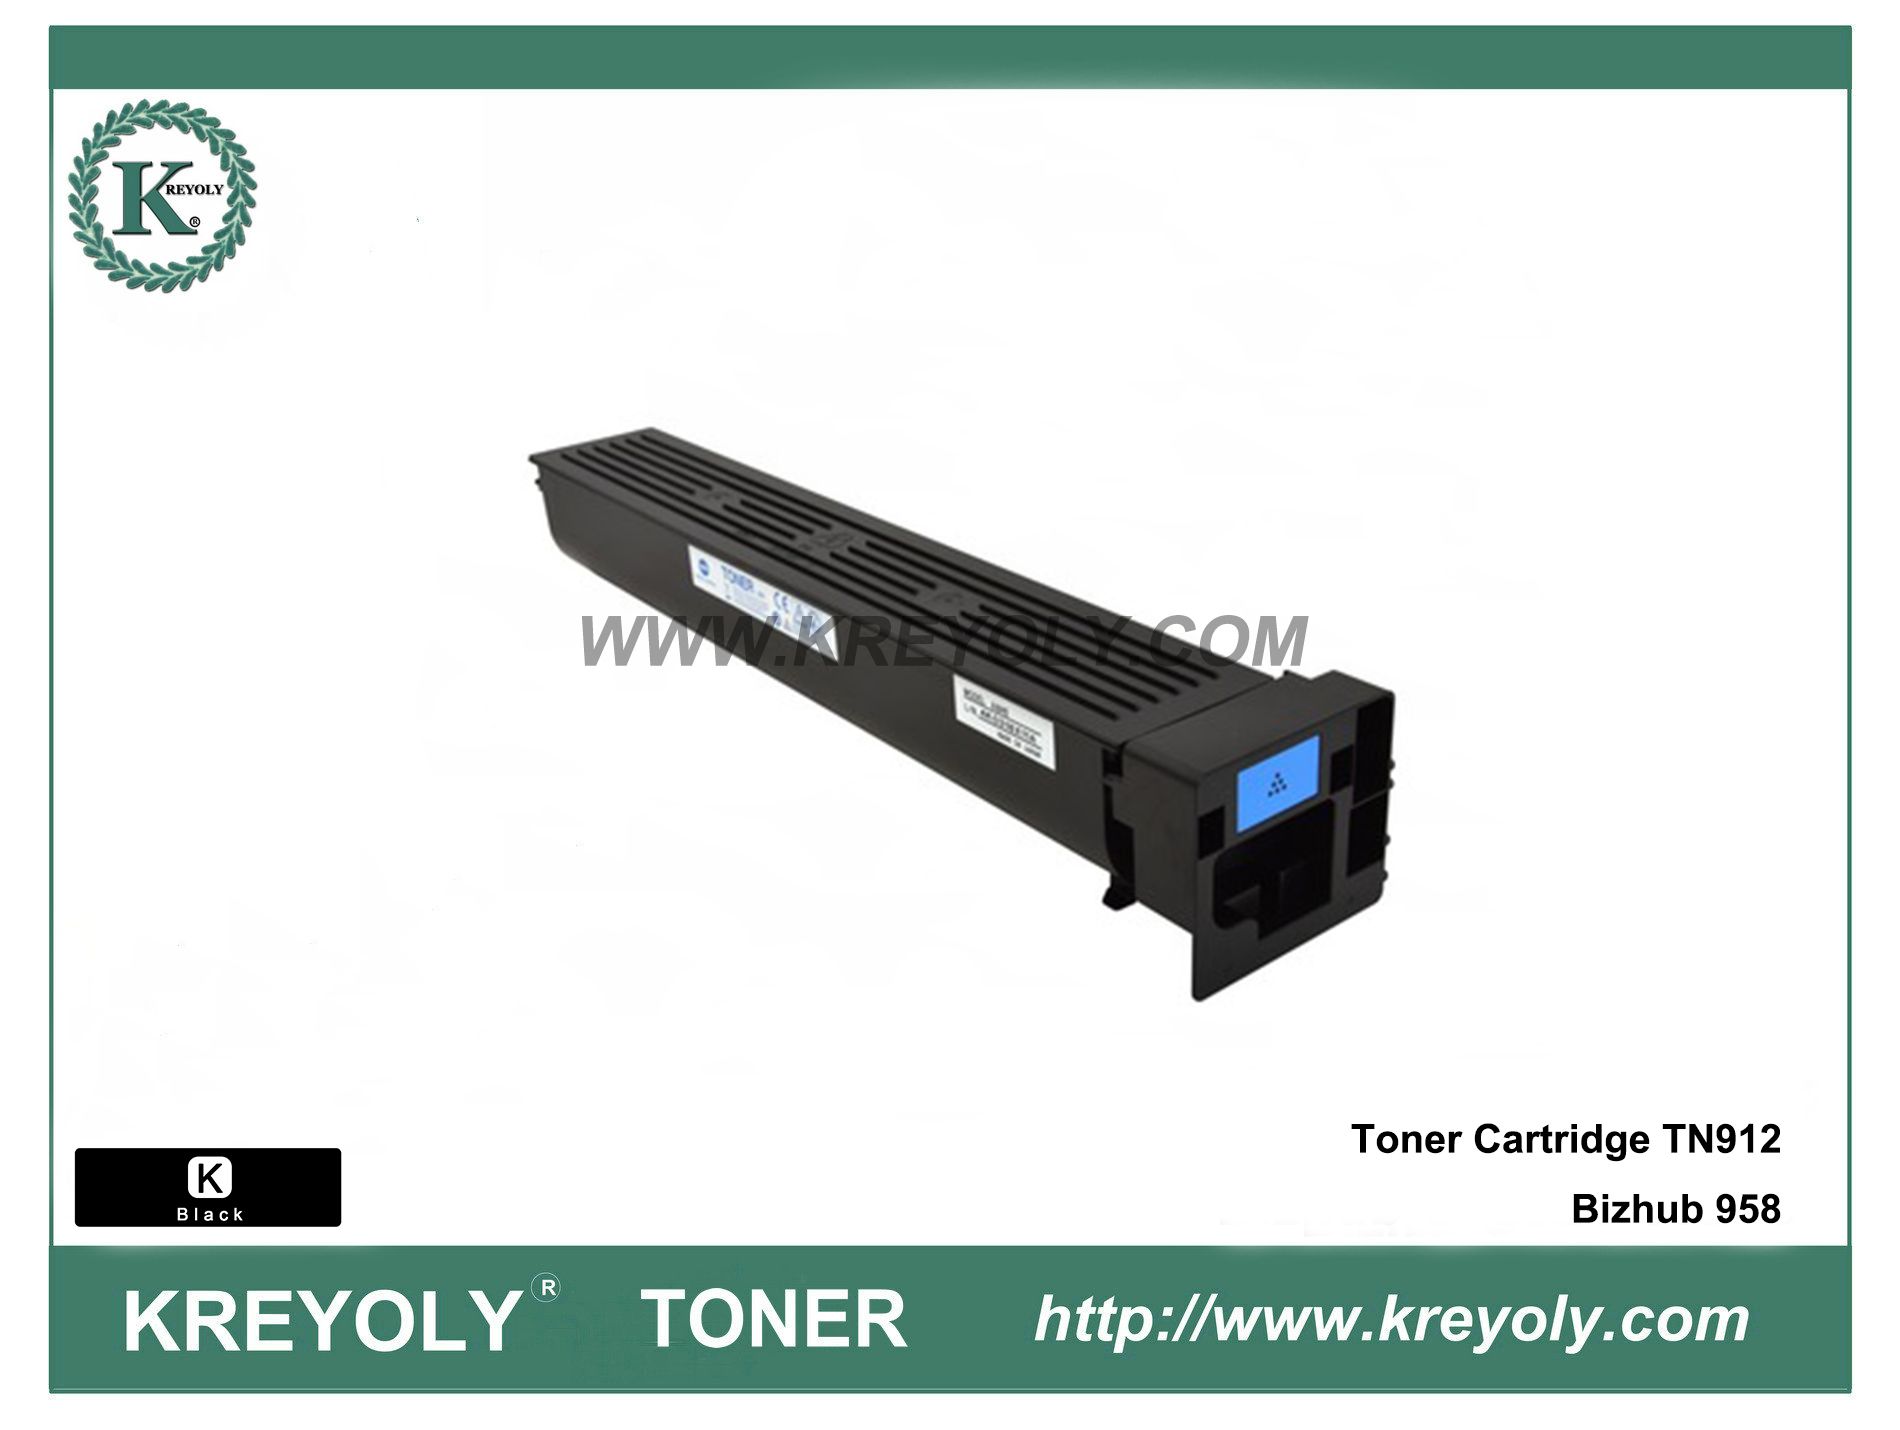 Konica Minolta TN912 Toner Cartridge for Bizhub 958